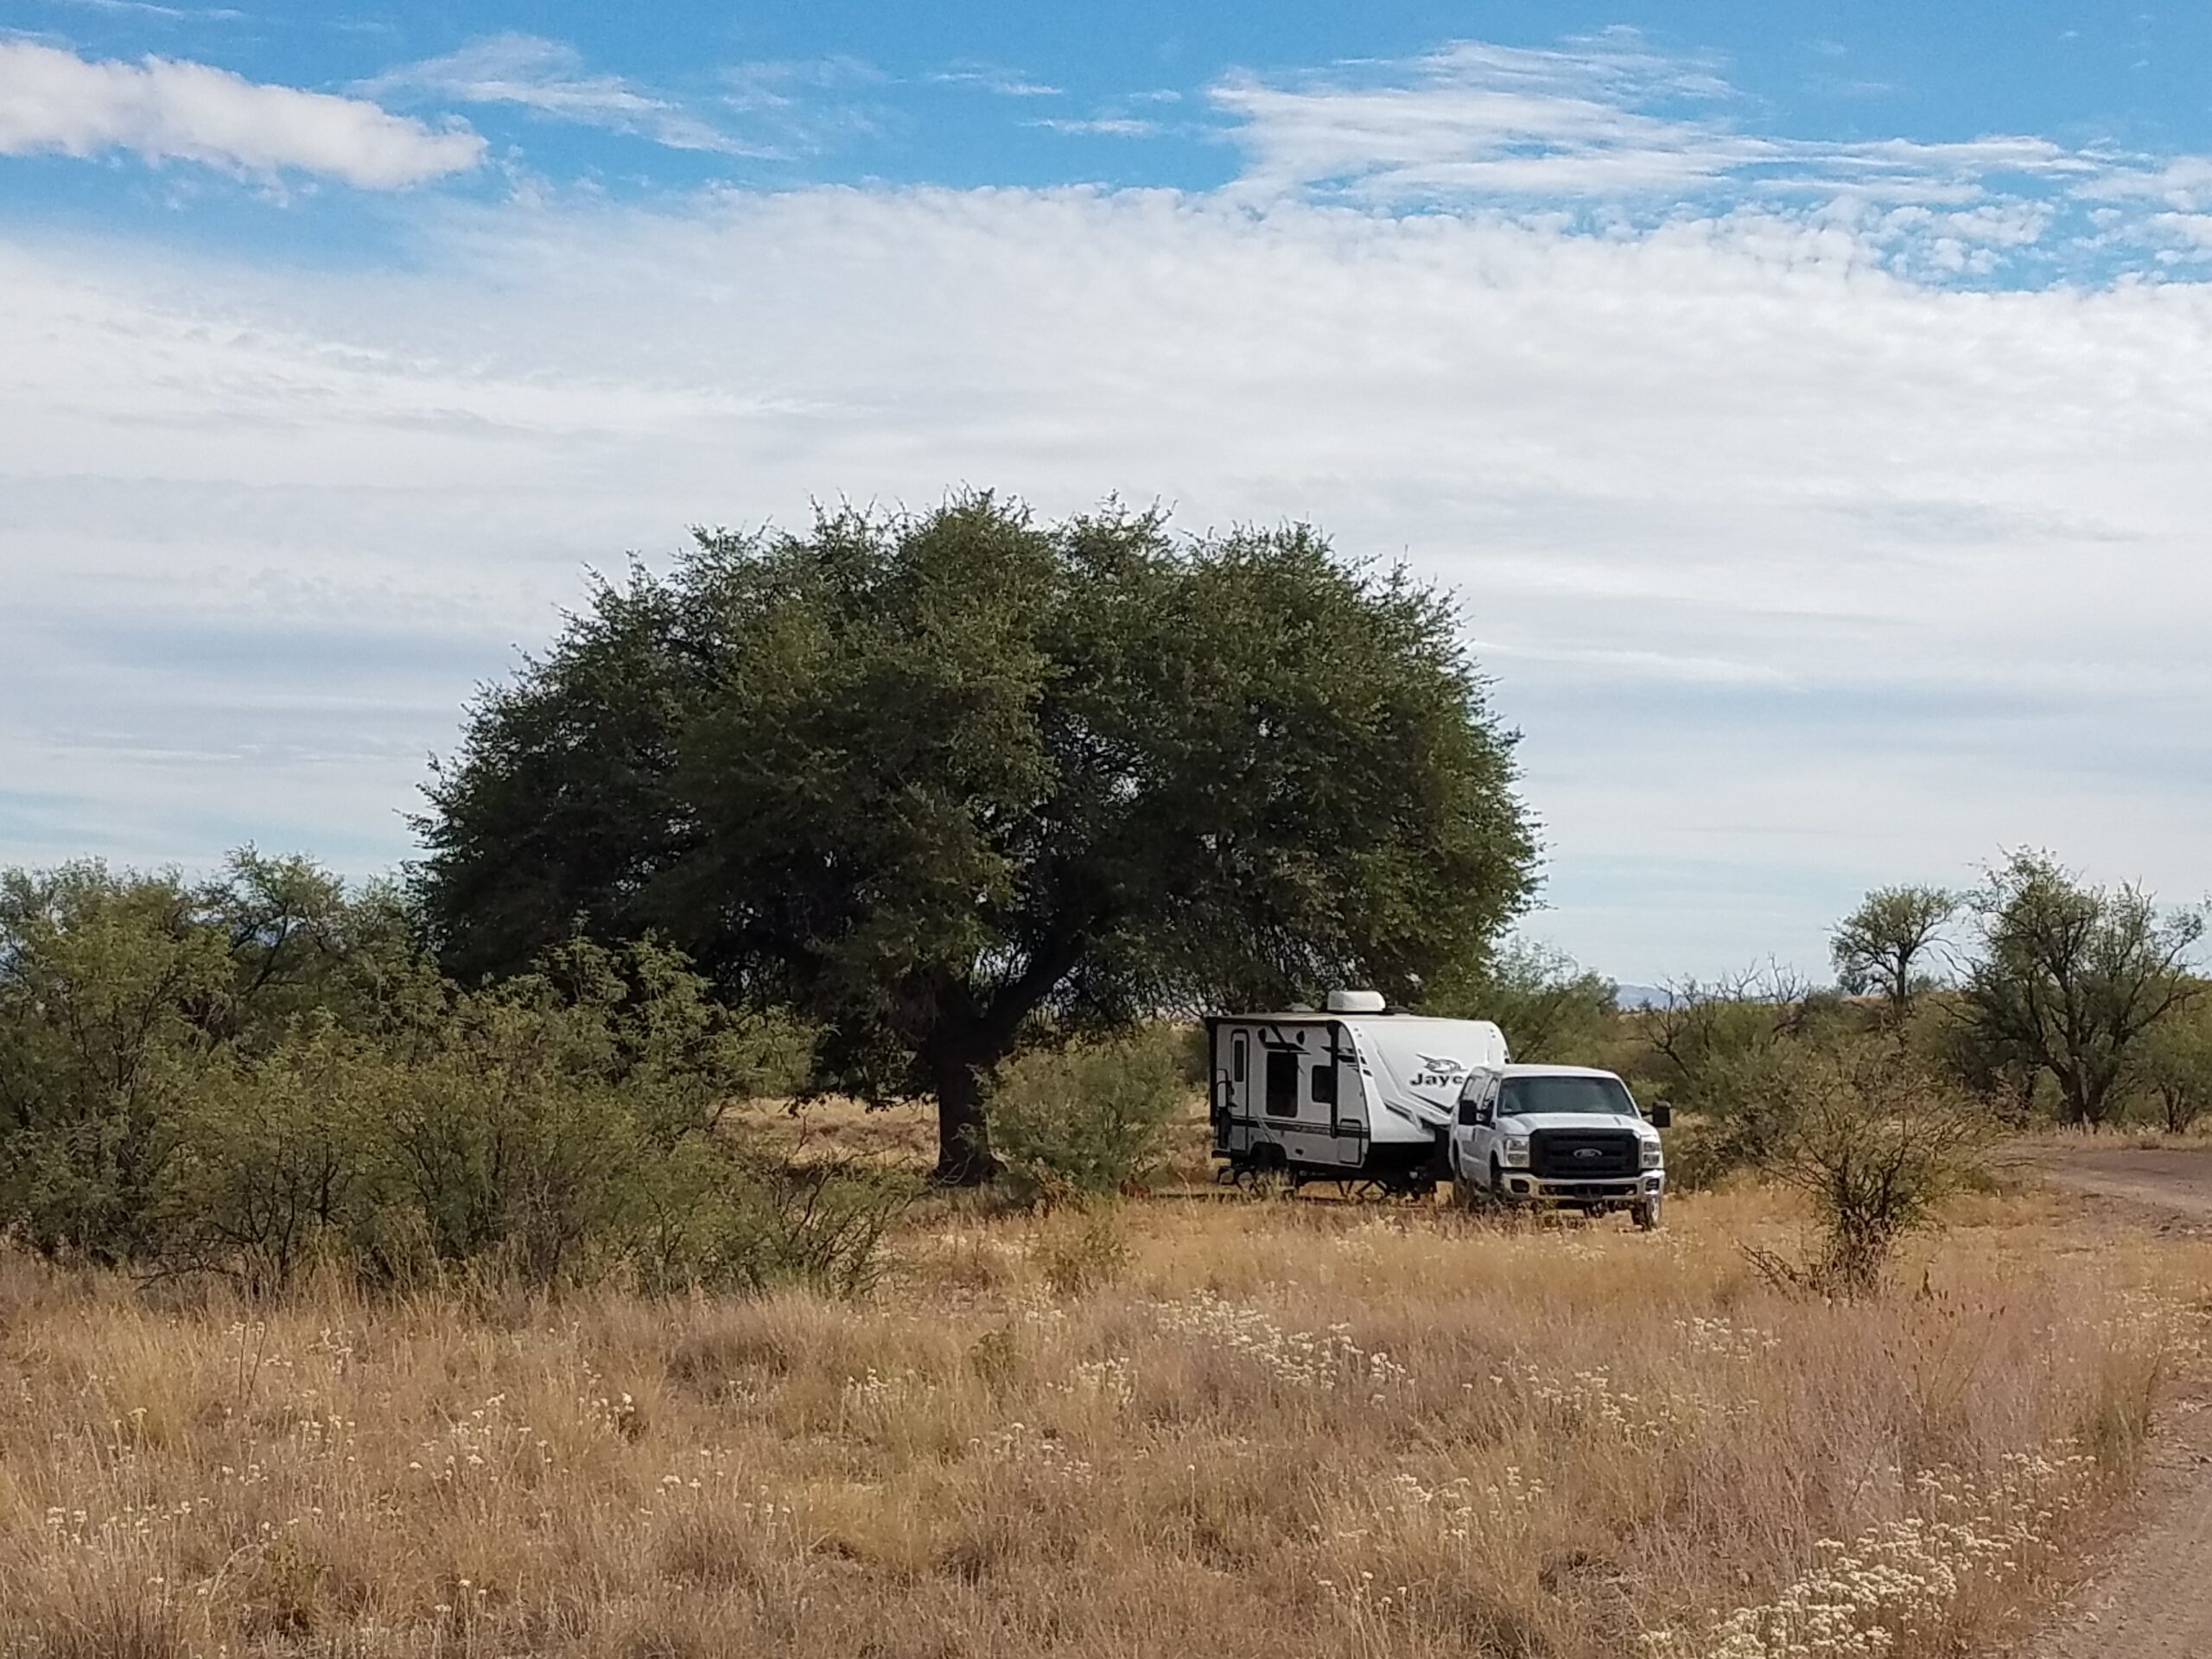 boondocking site at a conservation area near Sonoyta AZ